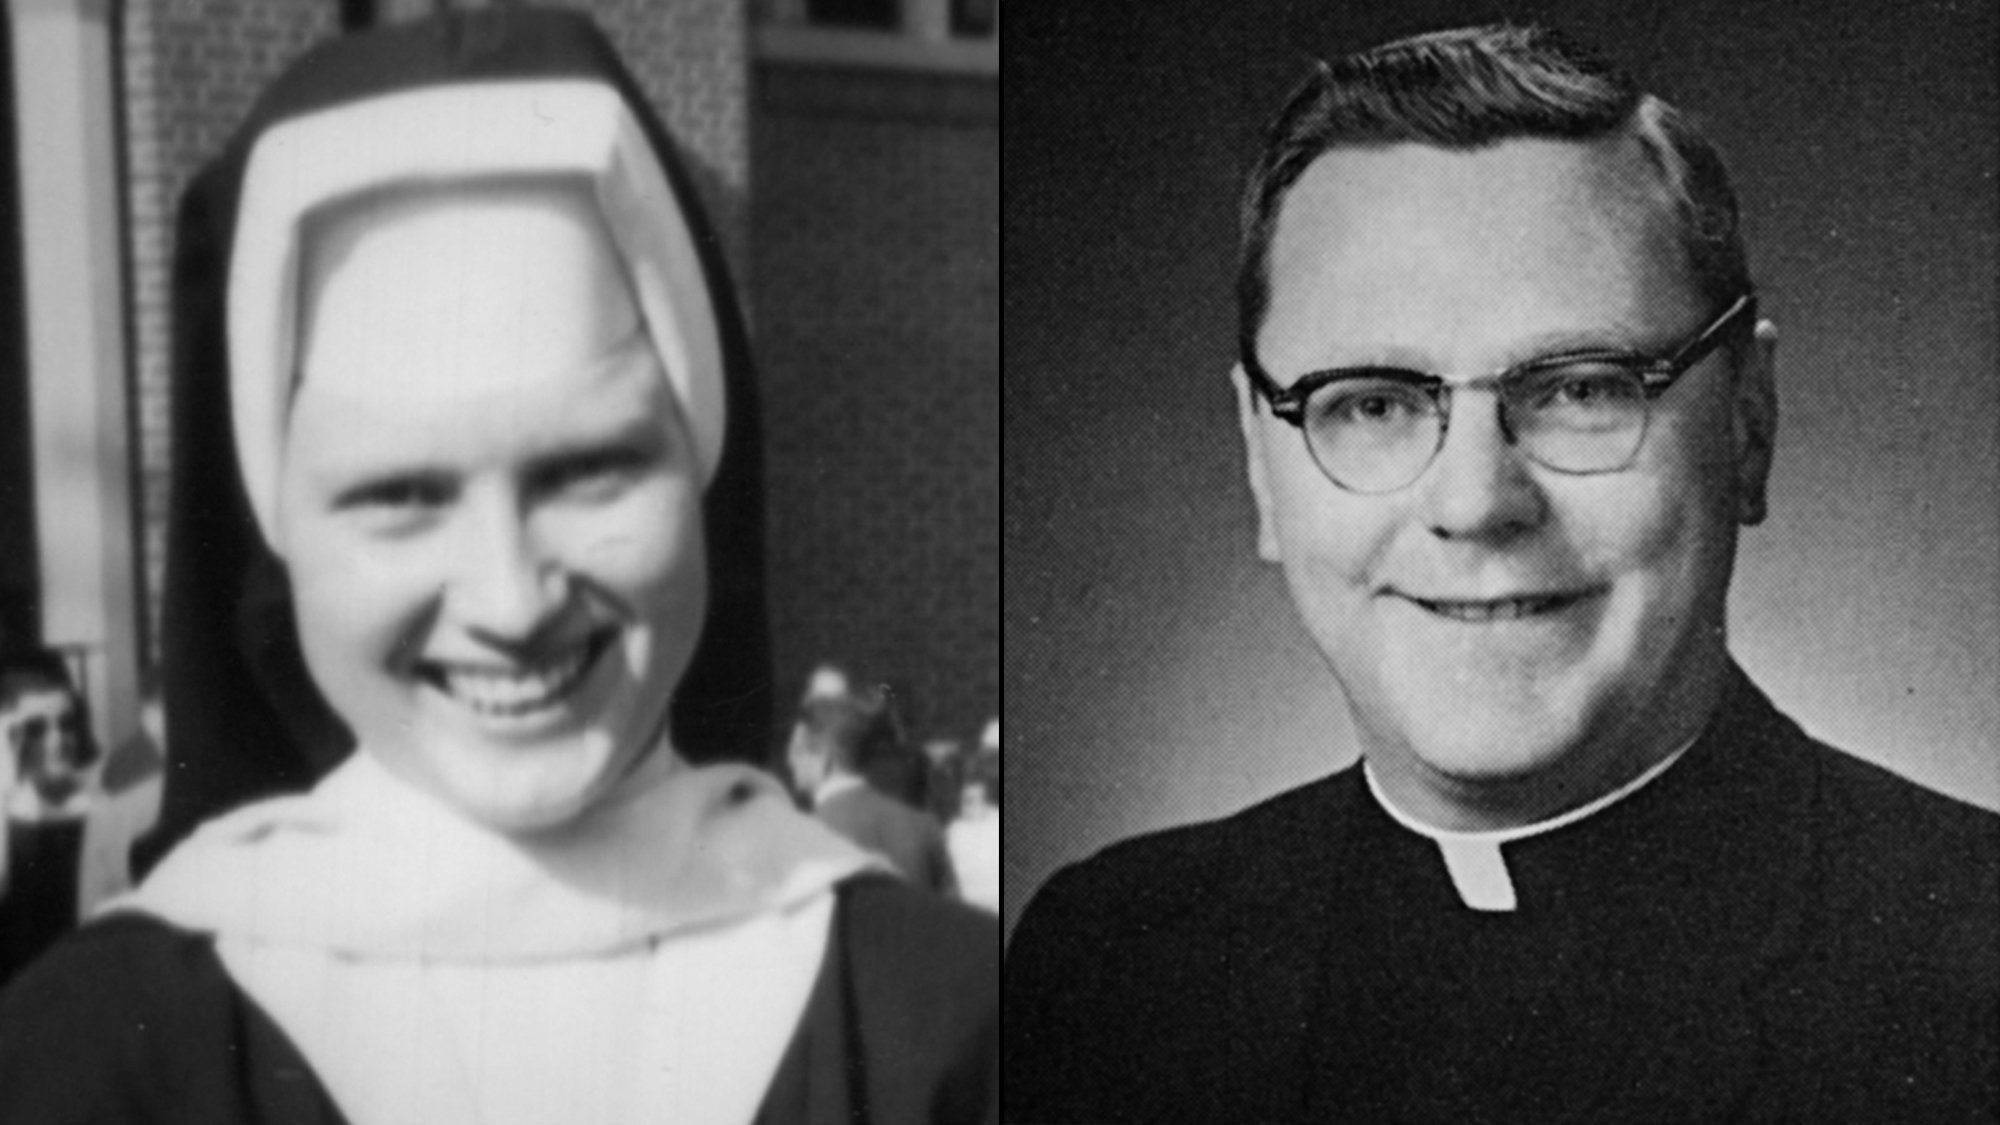 A DNA sample taken from the exhumed remains of former priest A. Joseph Maskell does not match the DNA from the murder scene of Sister Catherine Ann Cesnik according to Baltimore County Police